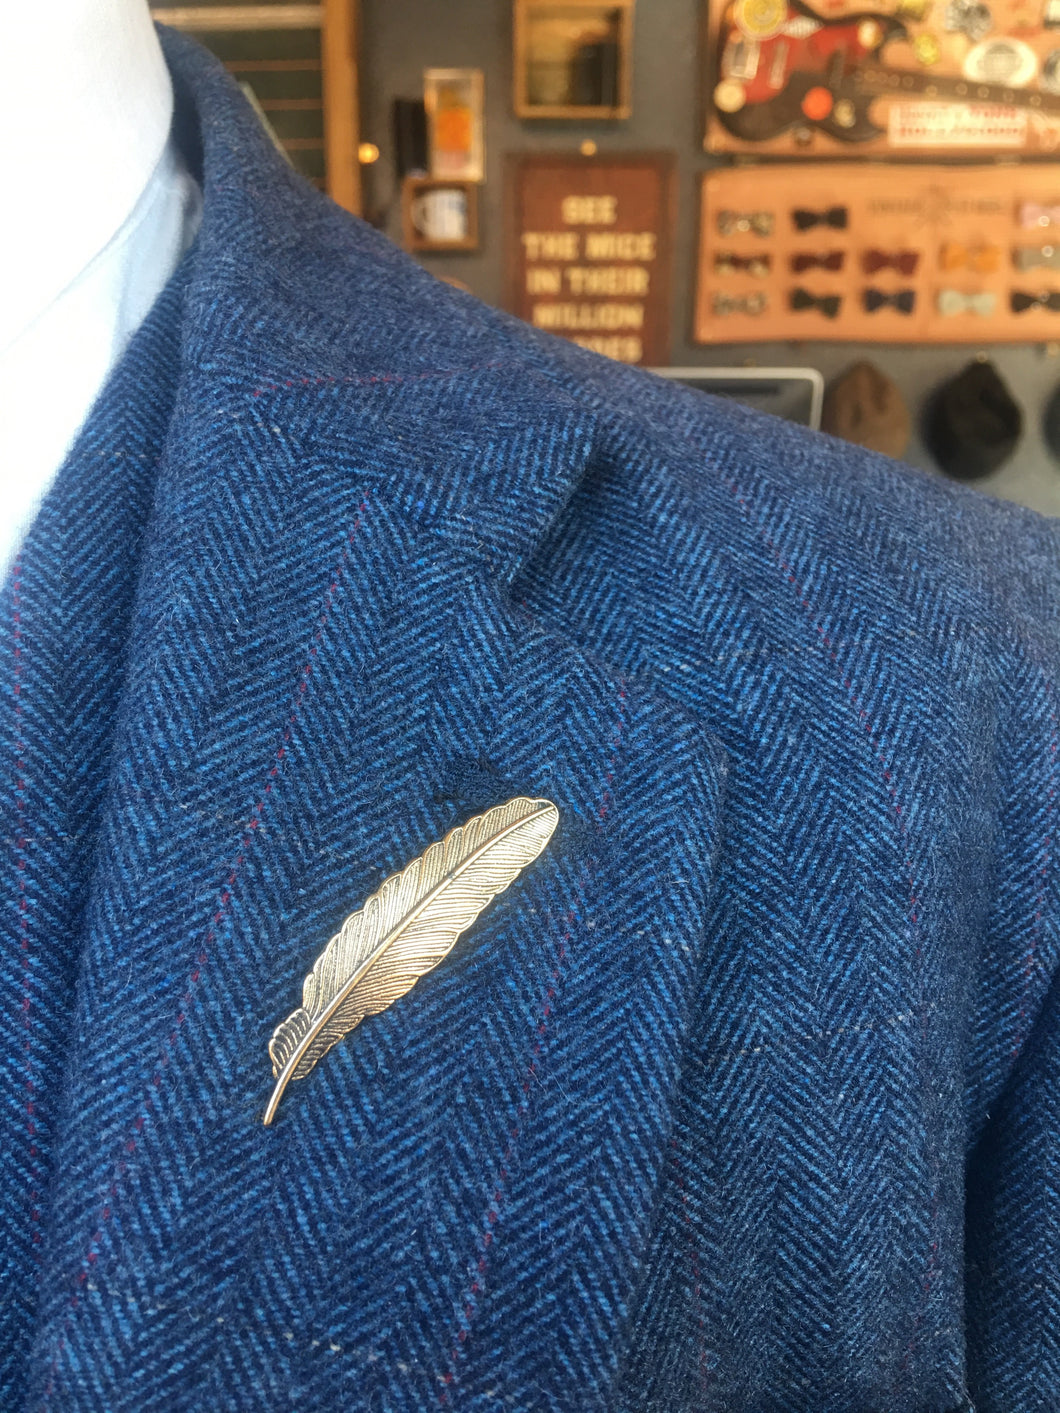 Antique Gold Feather Lapel Pin